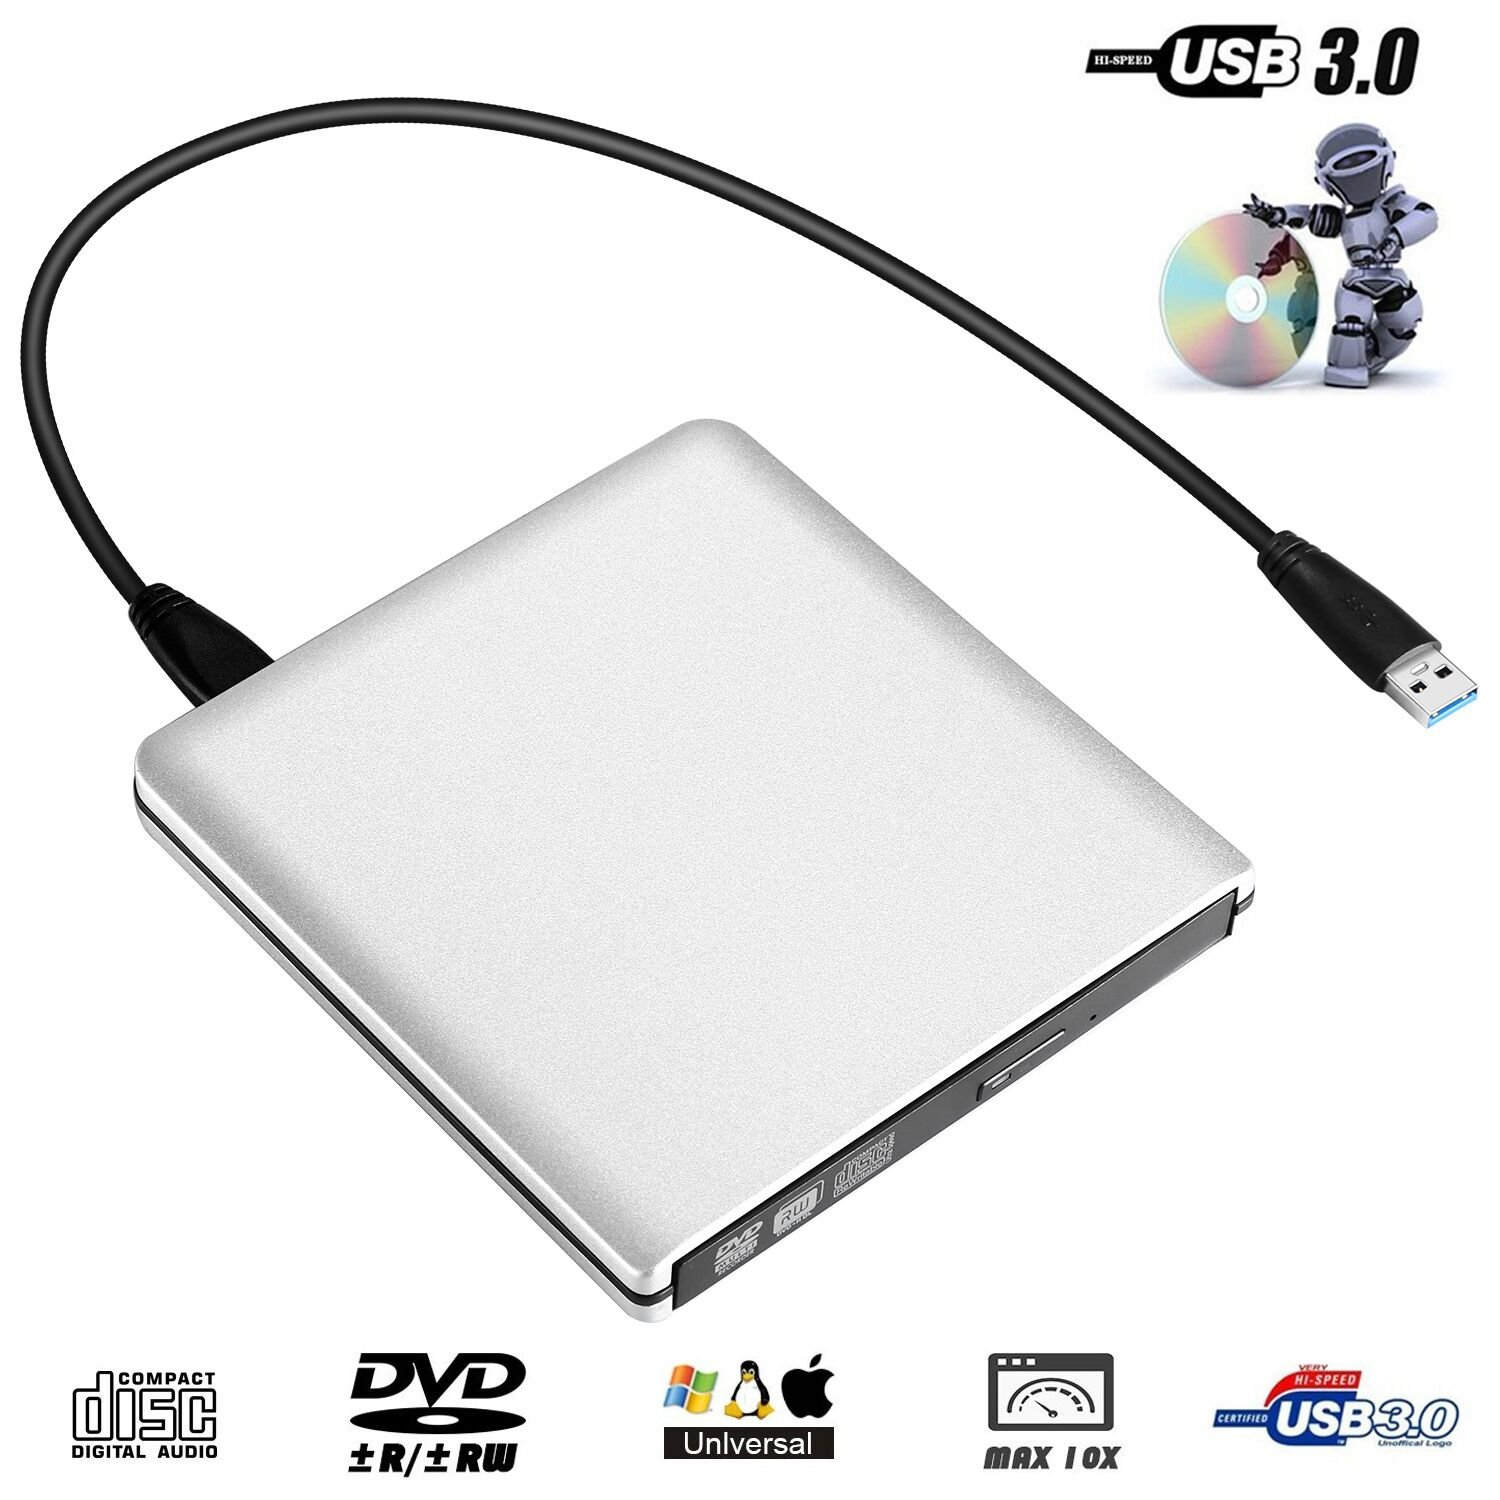 iStrong External USB 3.0 Portable DVD CD Drive Burner Ultra Slim Optical Drive CD - RW DVD - RW Superdrive for Mac MacBook Pro Laptop Notebook Desktop Silvery